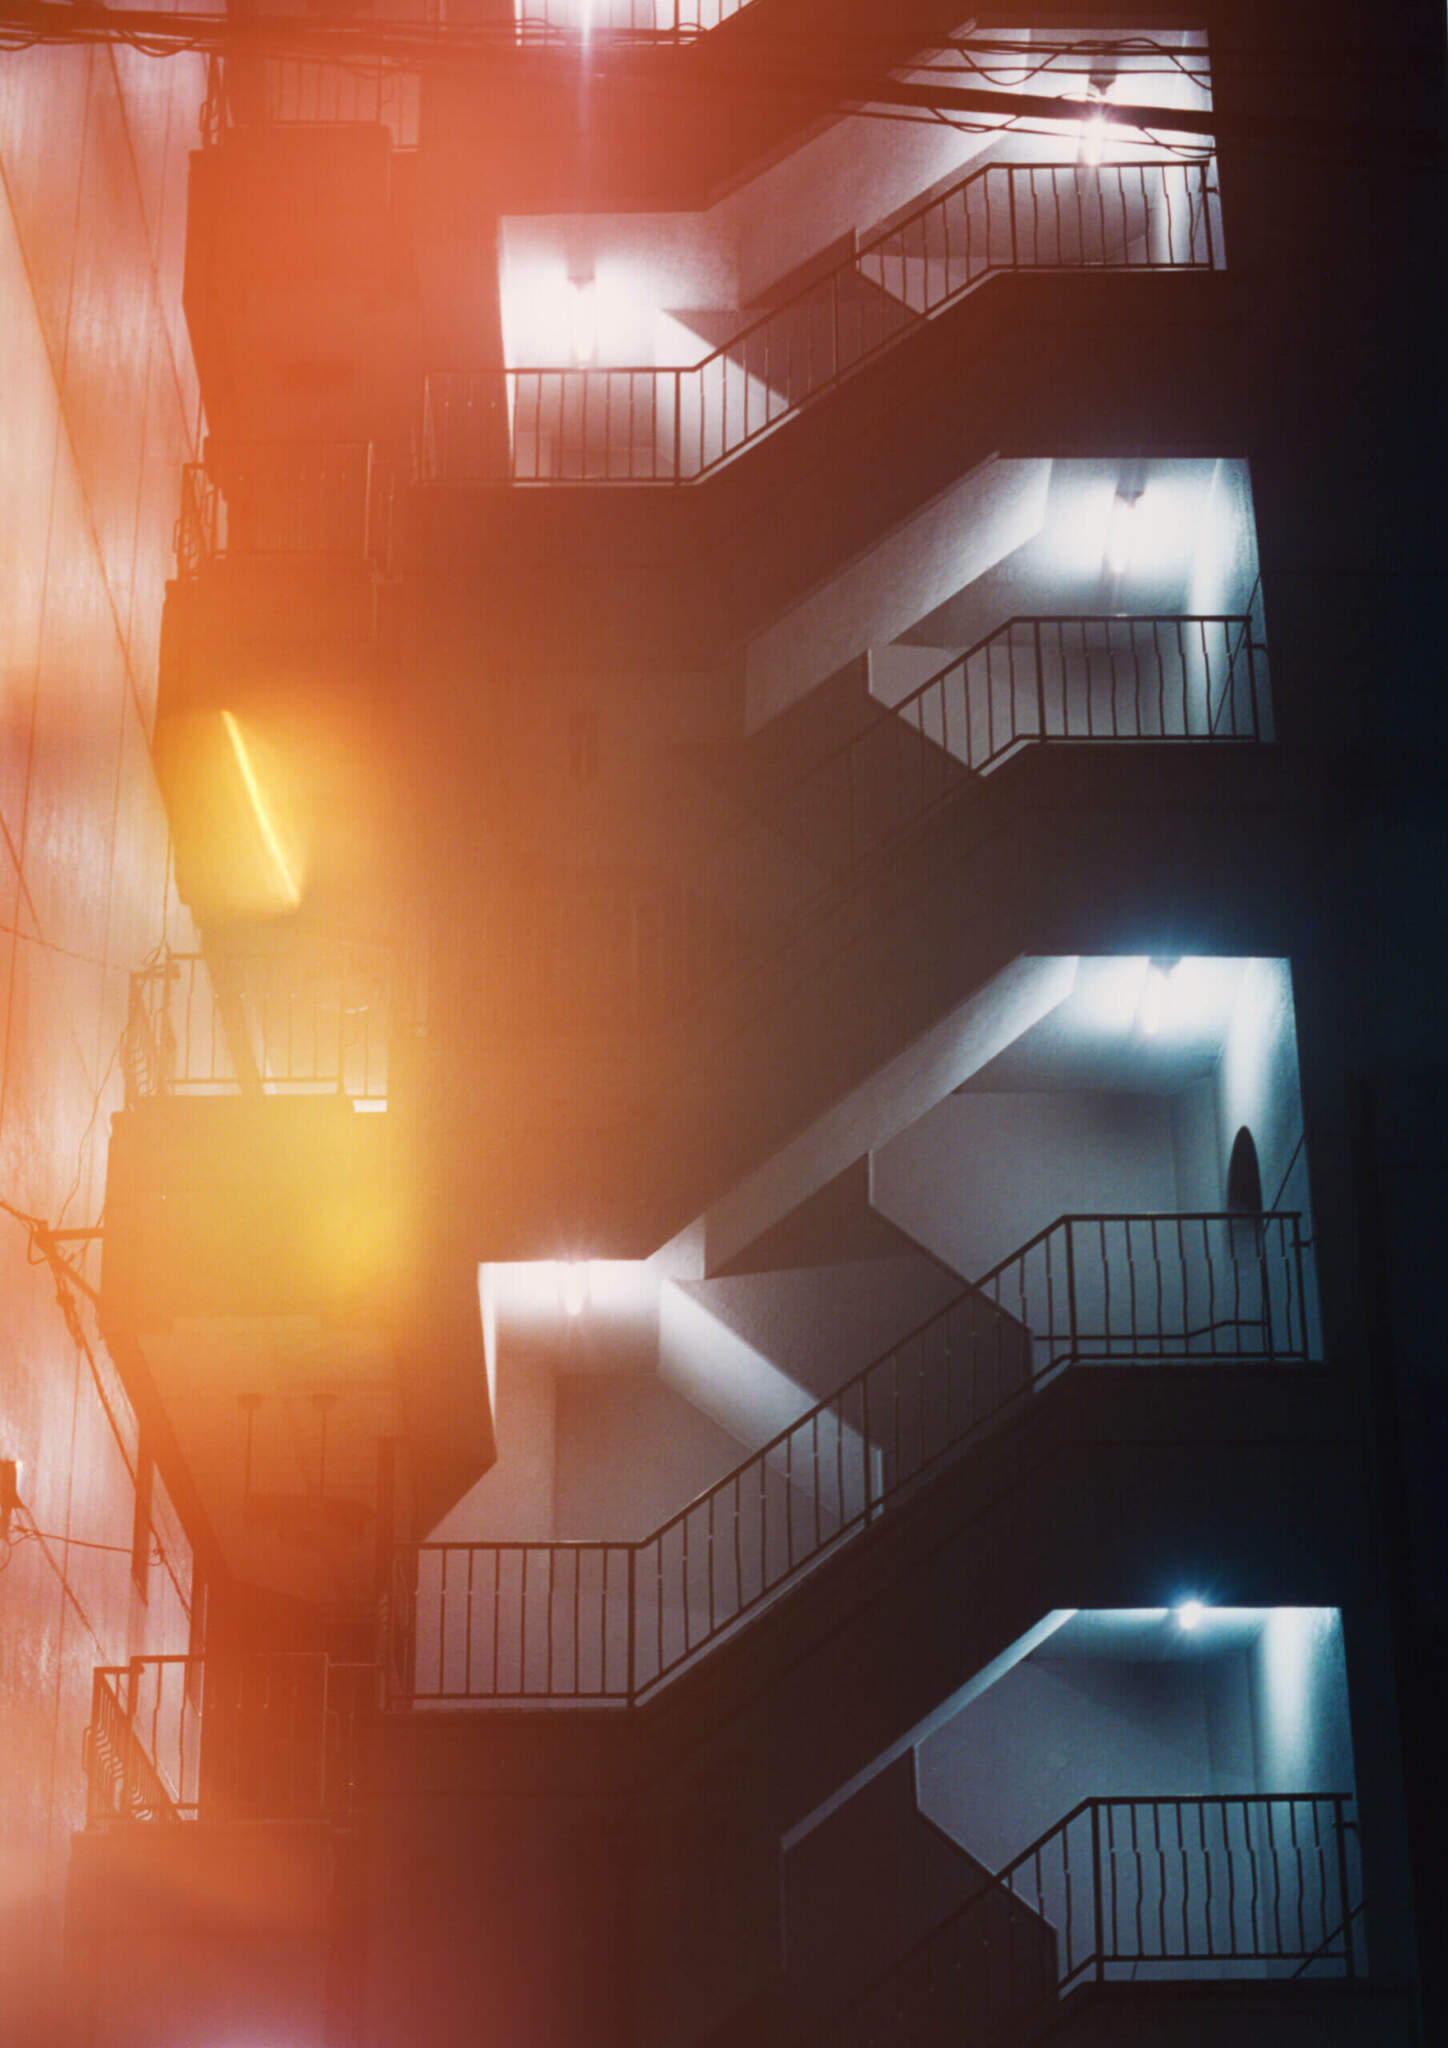 Ben Stockley Night Stairs scaled - Night Stairs by Ben Stockley